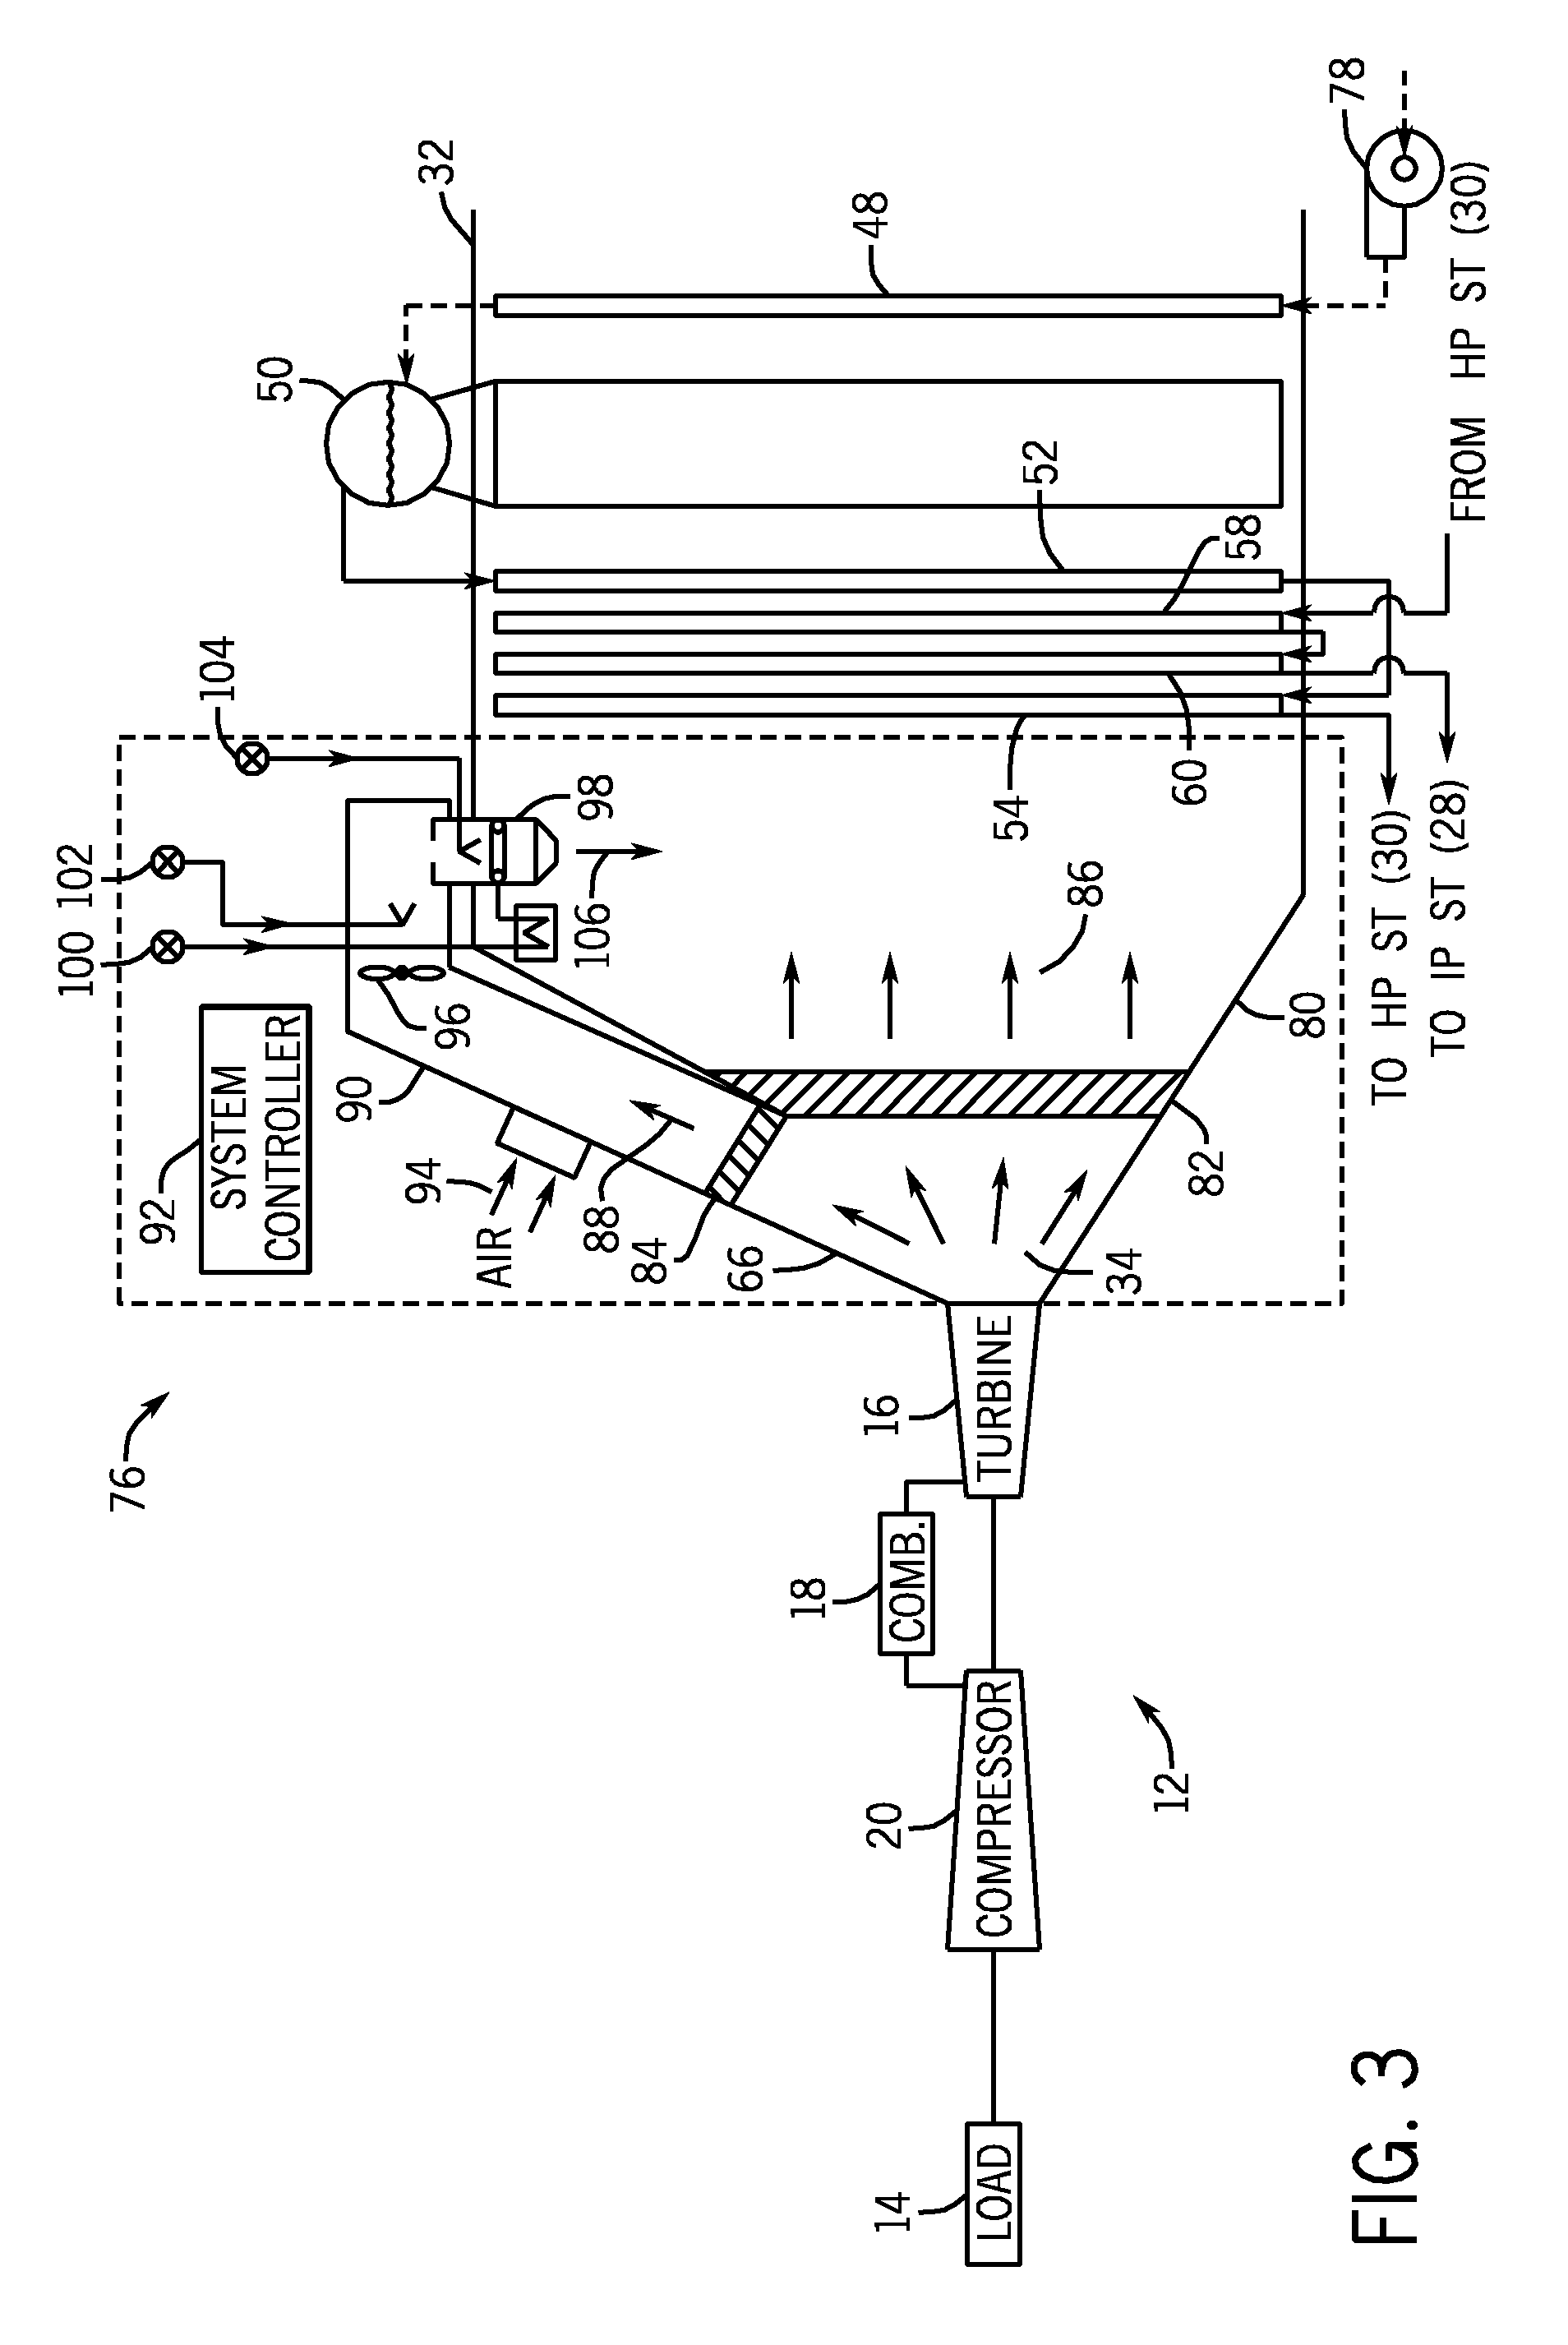 Patent US Low BTU fuel flow ratio duct burner for heating